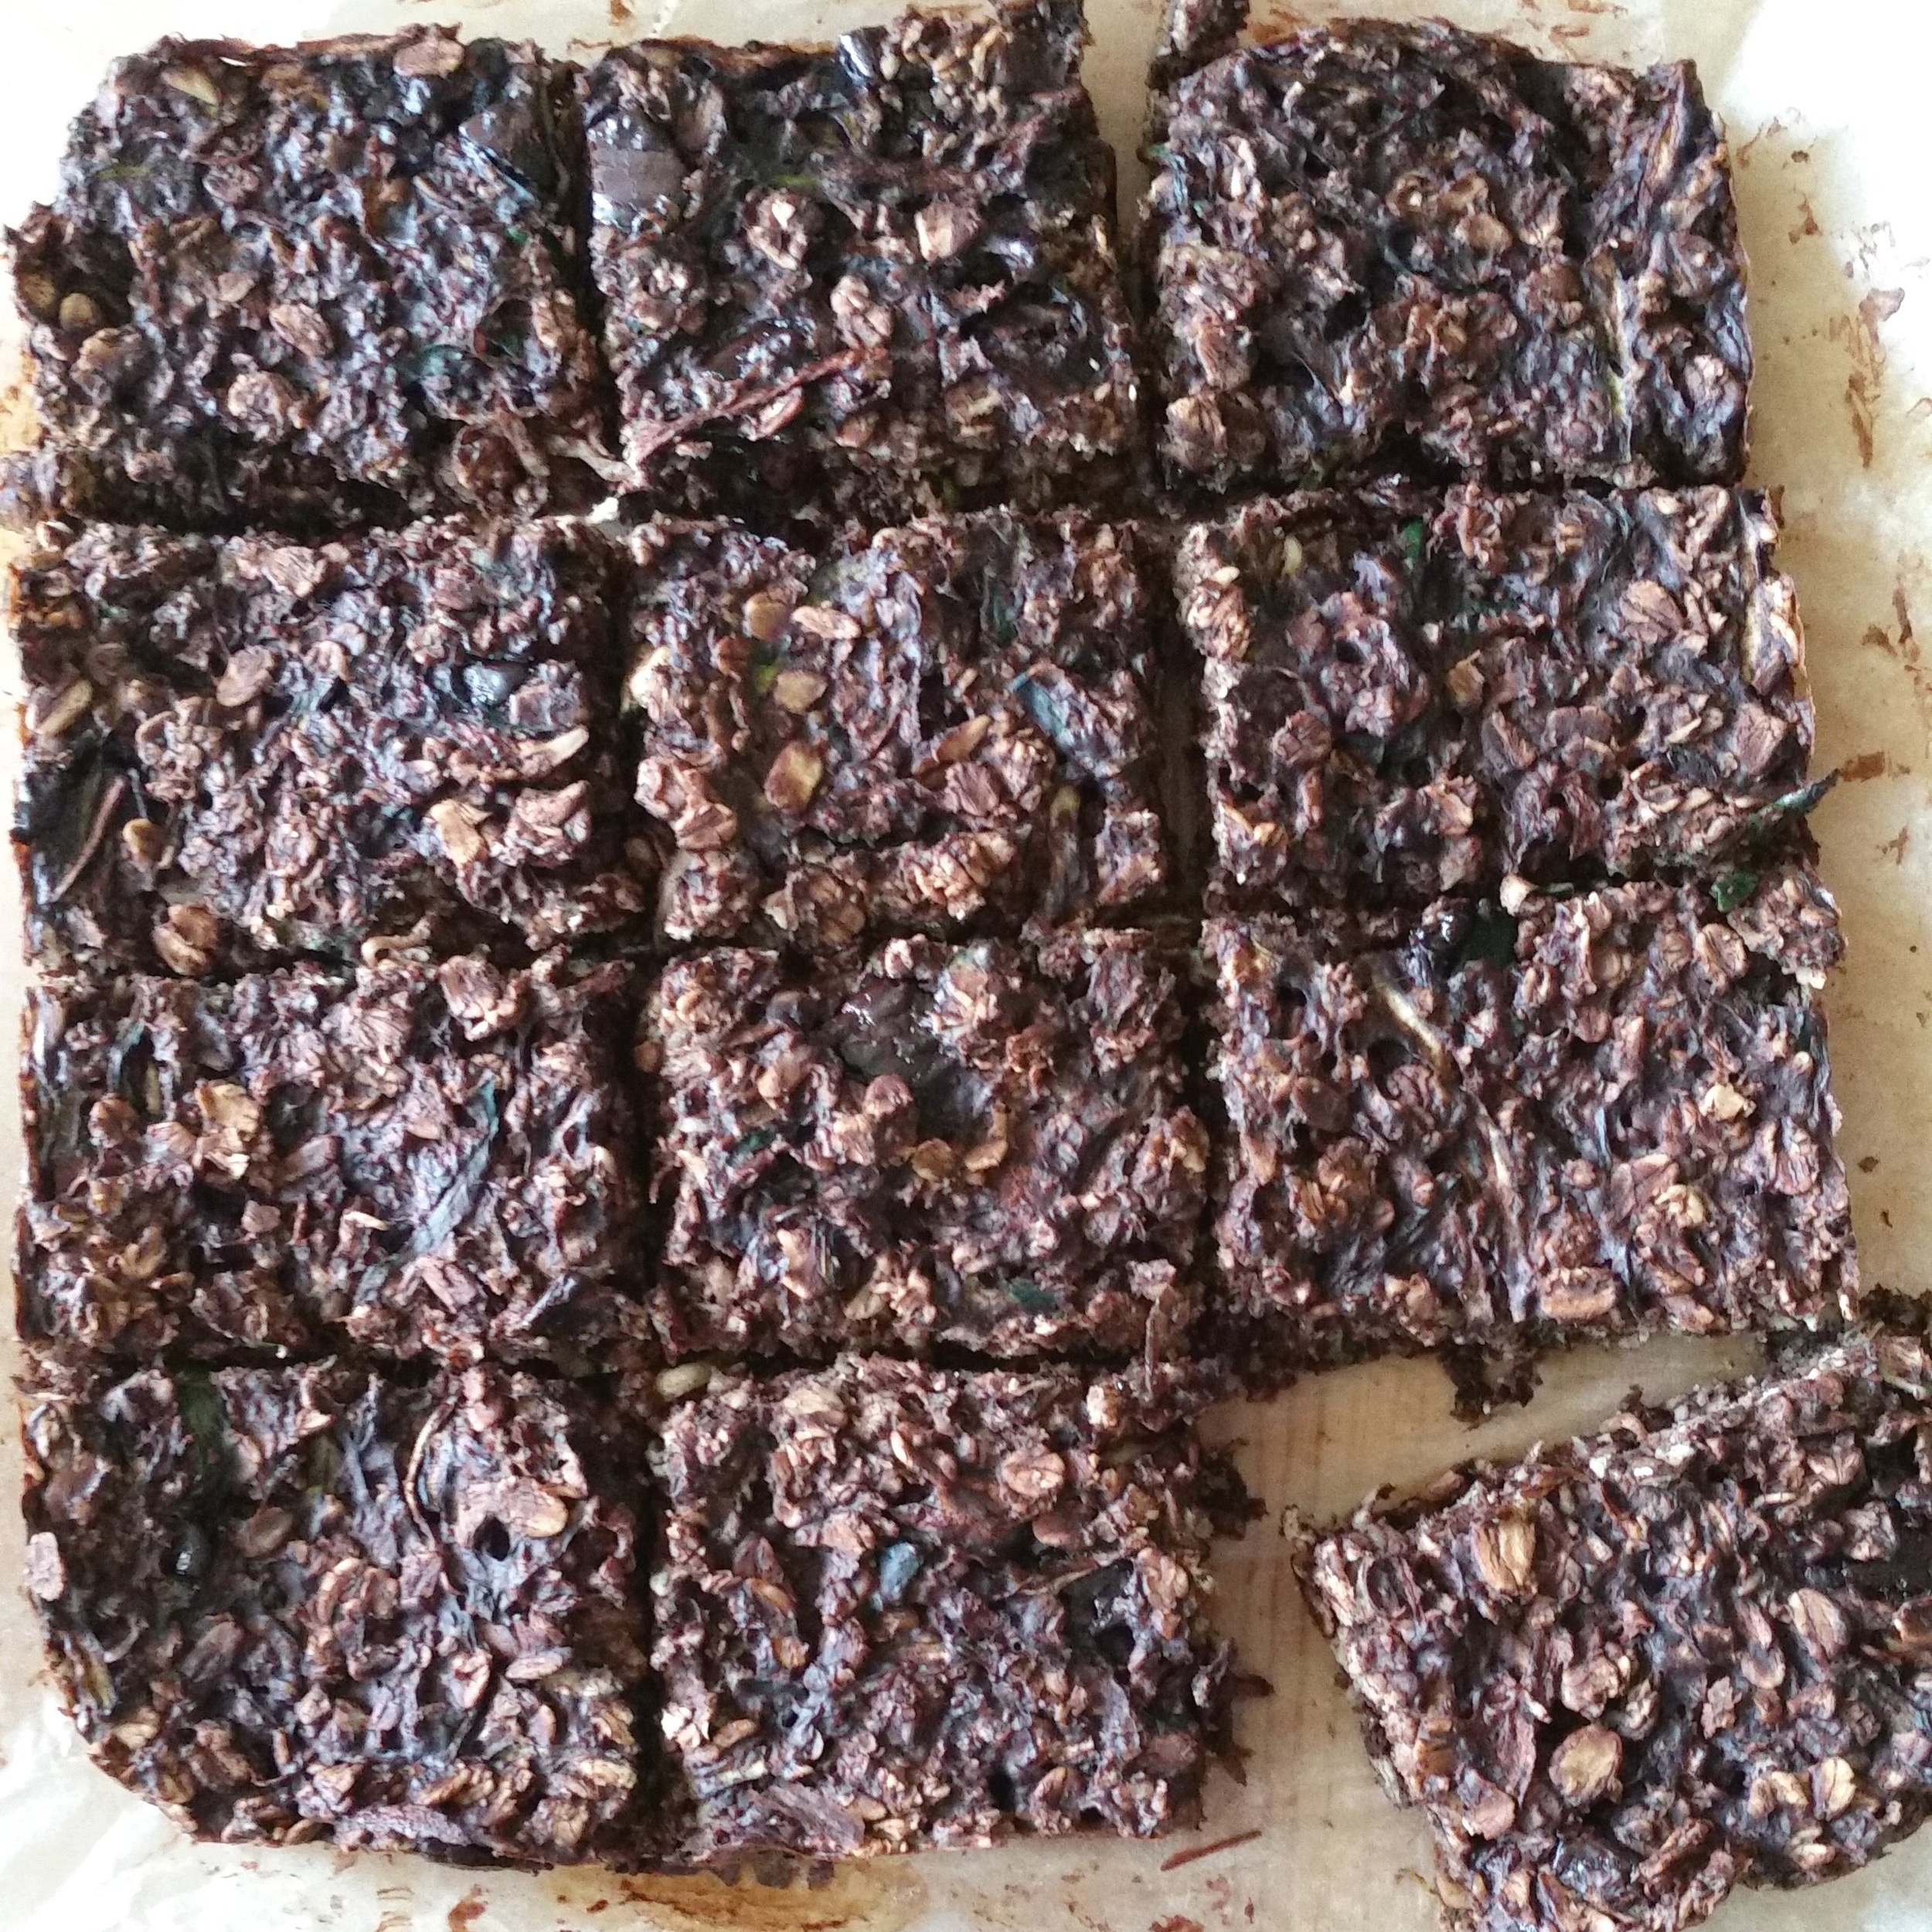 - This slice is wheat and refined sugar free and sneaks in some healthy veg. It's a wholesome snack that is perfect for lunch boxes or to have on hand for when friends drop in. The oats, being wholegrains, are full of fiber and leave you feeling fuller for longer. My kids love this slice and I find it to be a handy go-to when I'm hit with the 3pm lull.